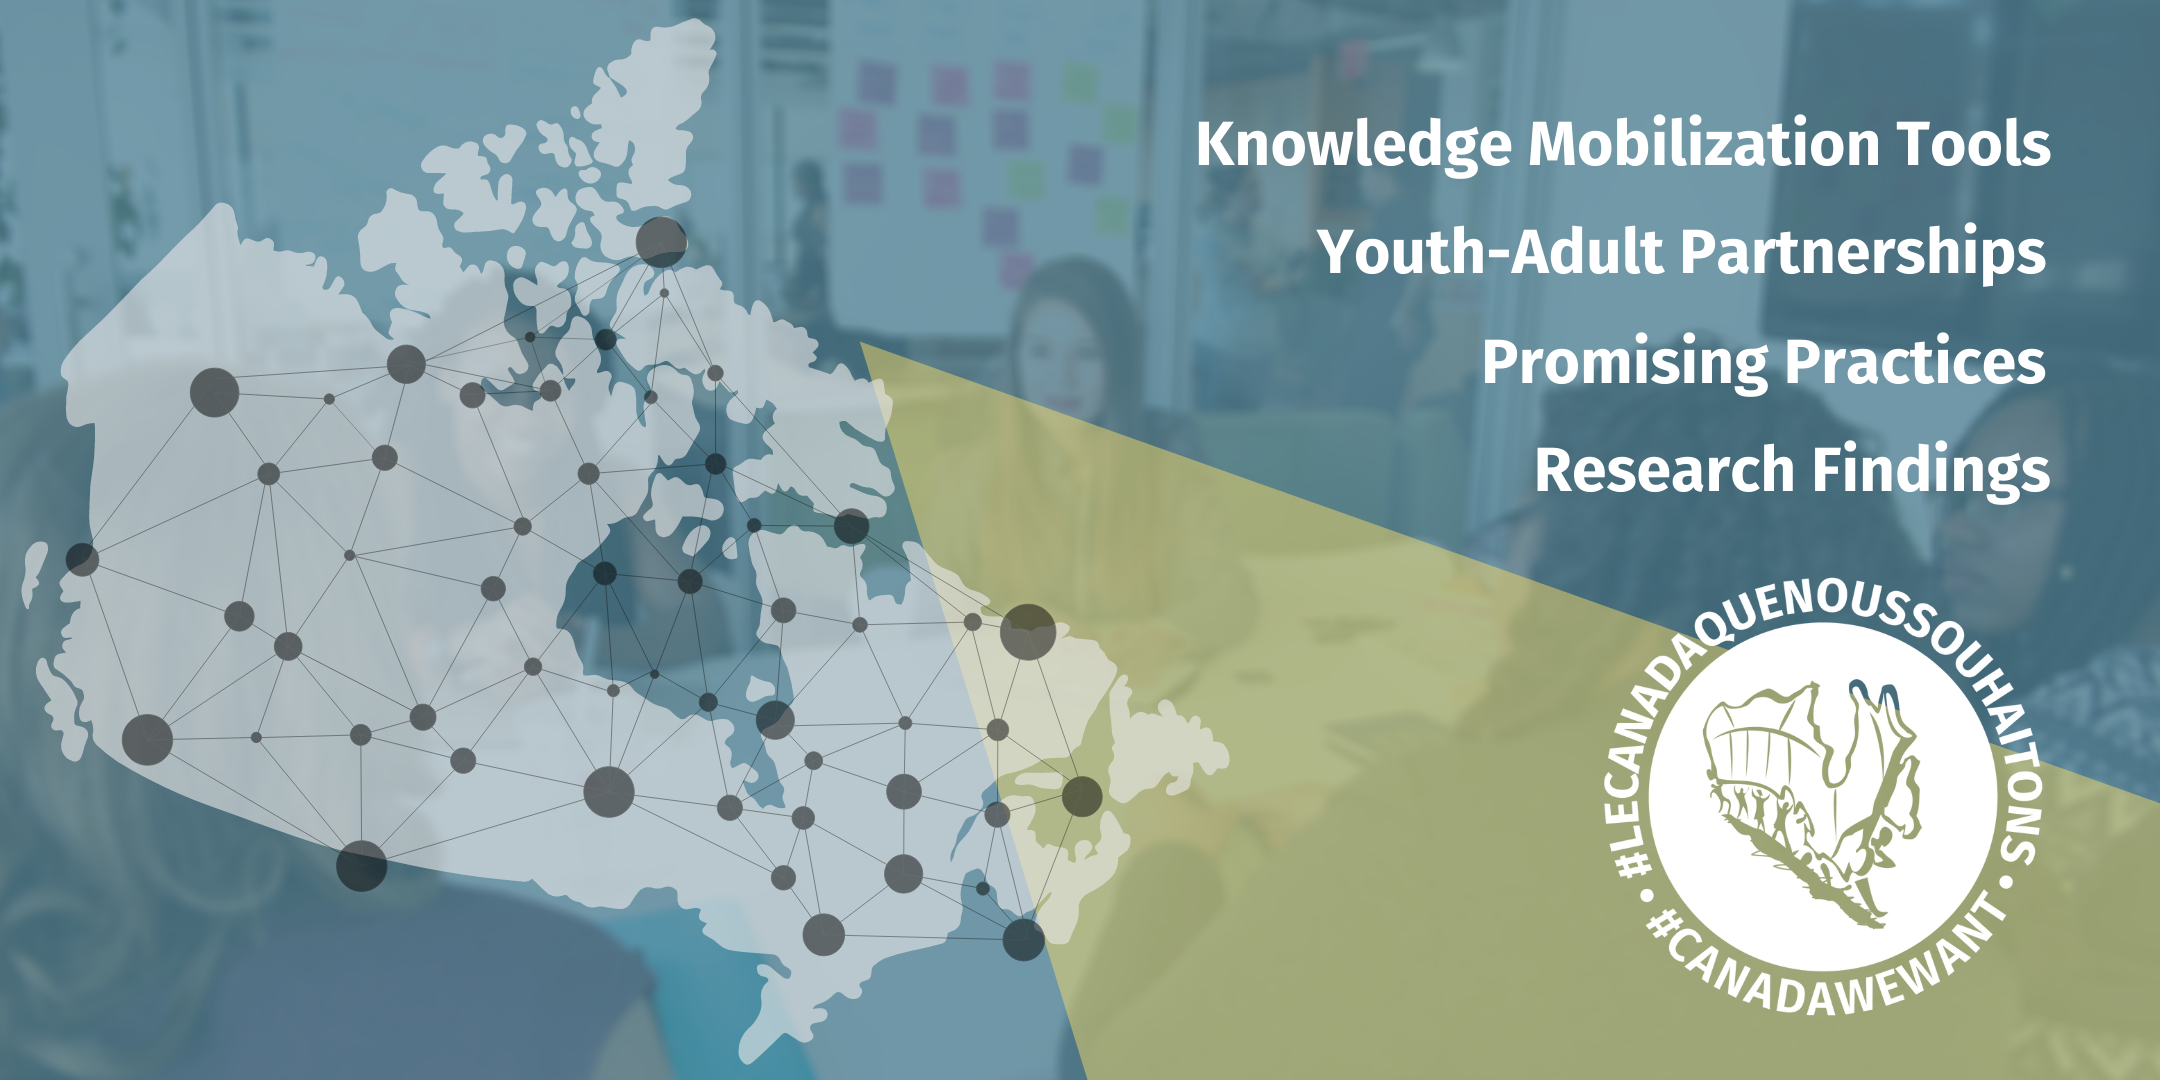 Map of Canada with many connected nodes. Knowledge Mobilization, Youth-Adult Partnerships, Promising Practices and Research Findings.